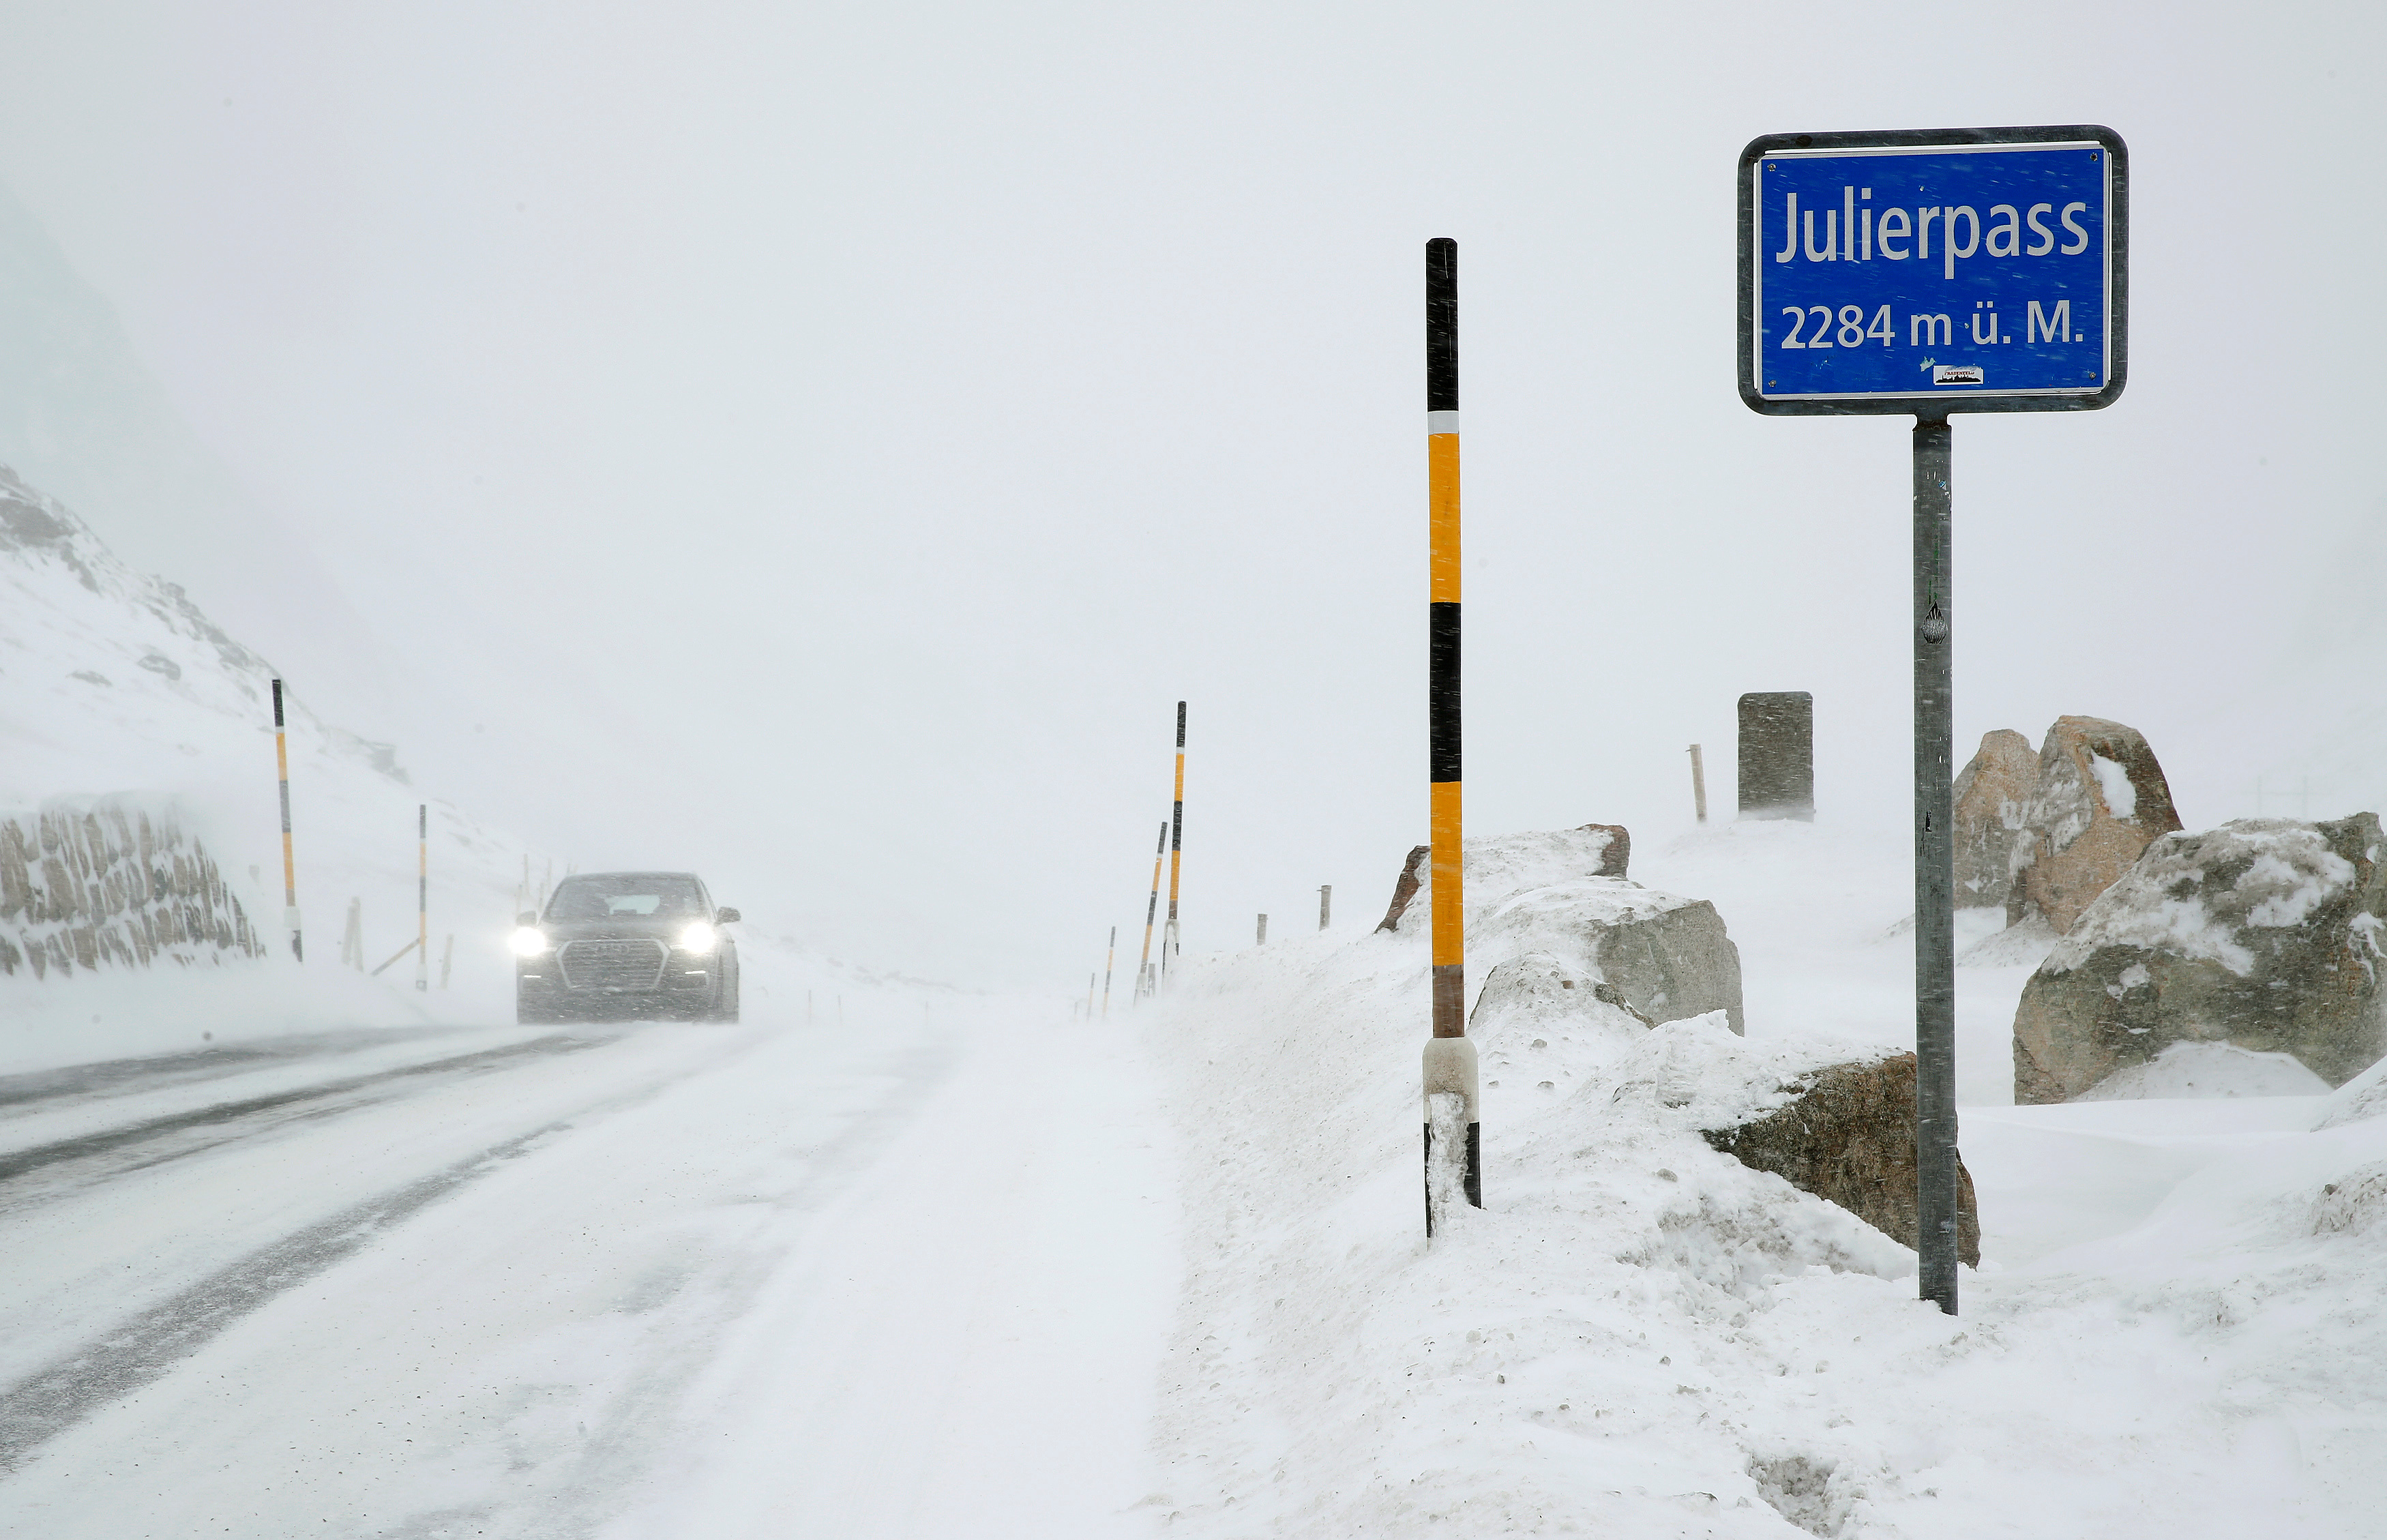 A car drives on the snow-covered road over the summit of the Julierpass mountainpass (2,284 m/7,493 ft above sea level) in the Canton of Grisons, Switzerland December 10, 2017. REUTERS/Arnd Wiegmann - RC1A78236960